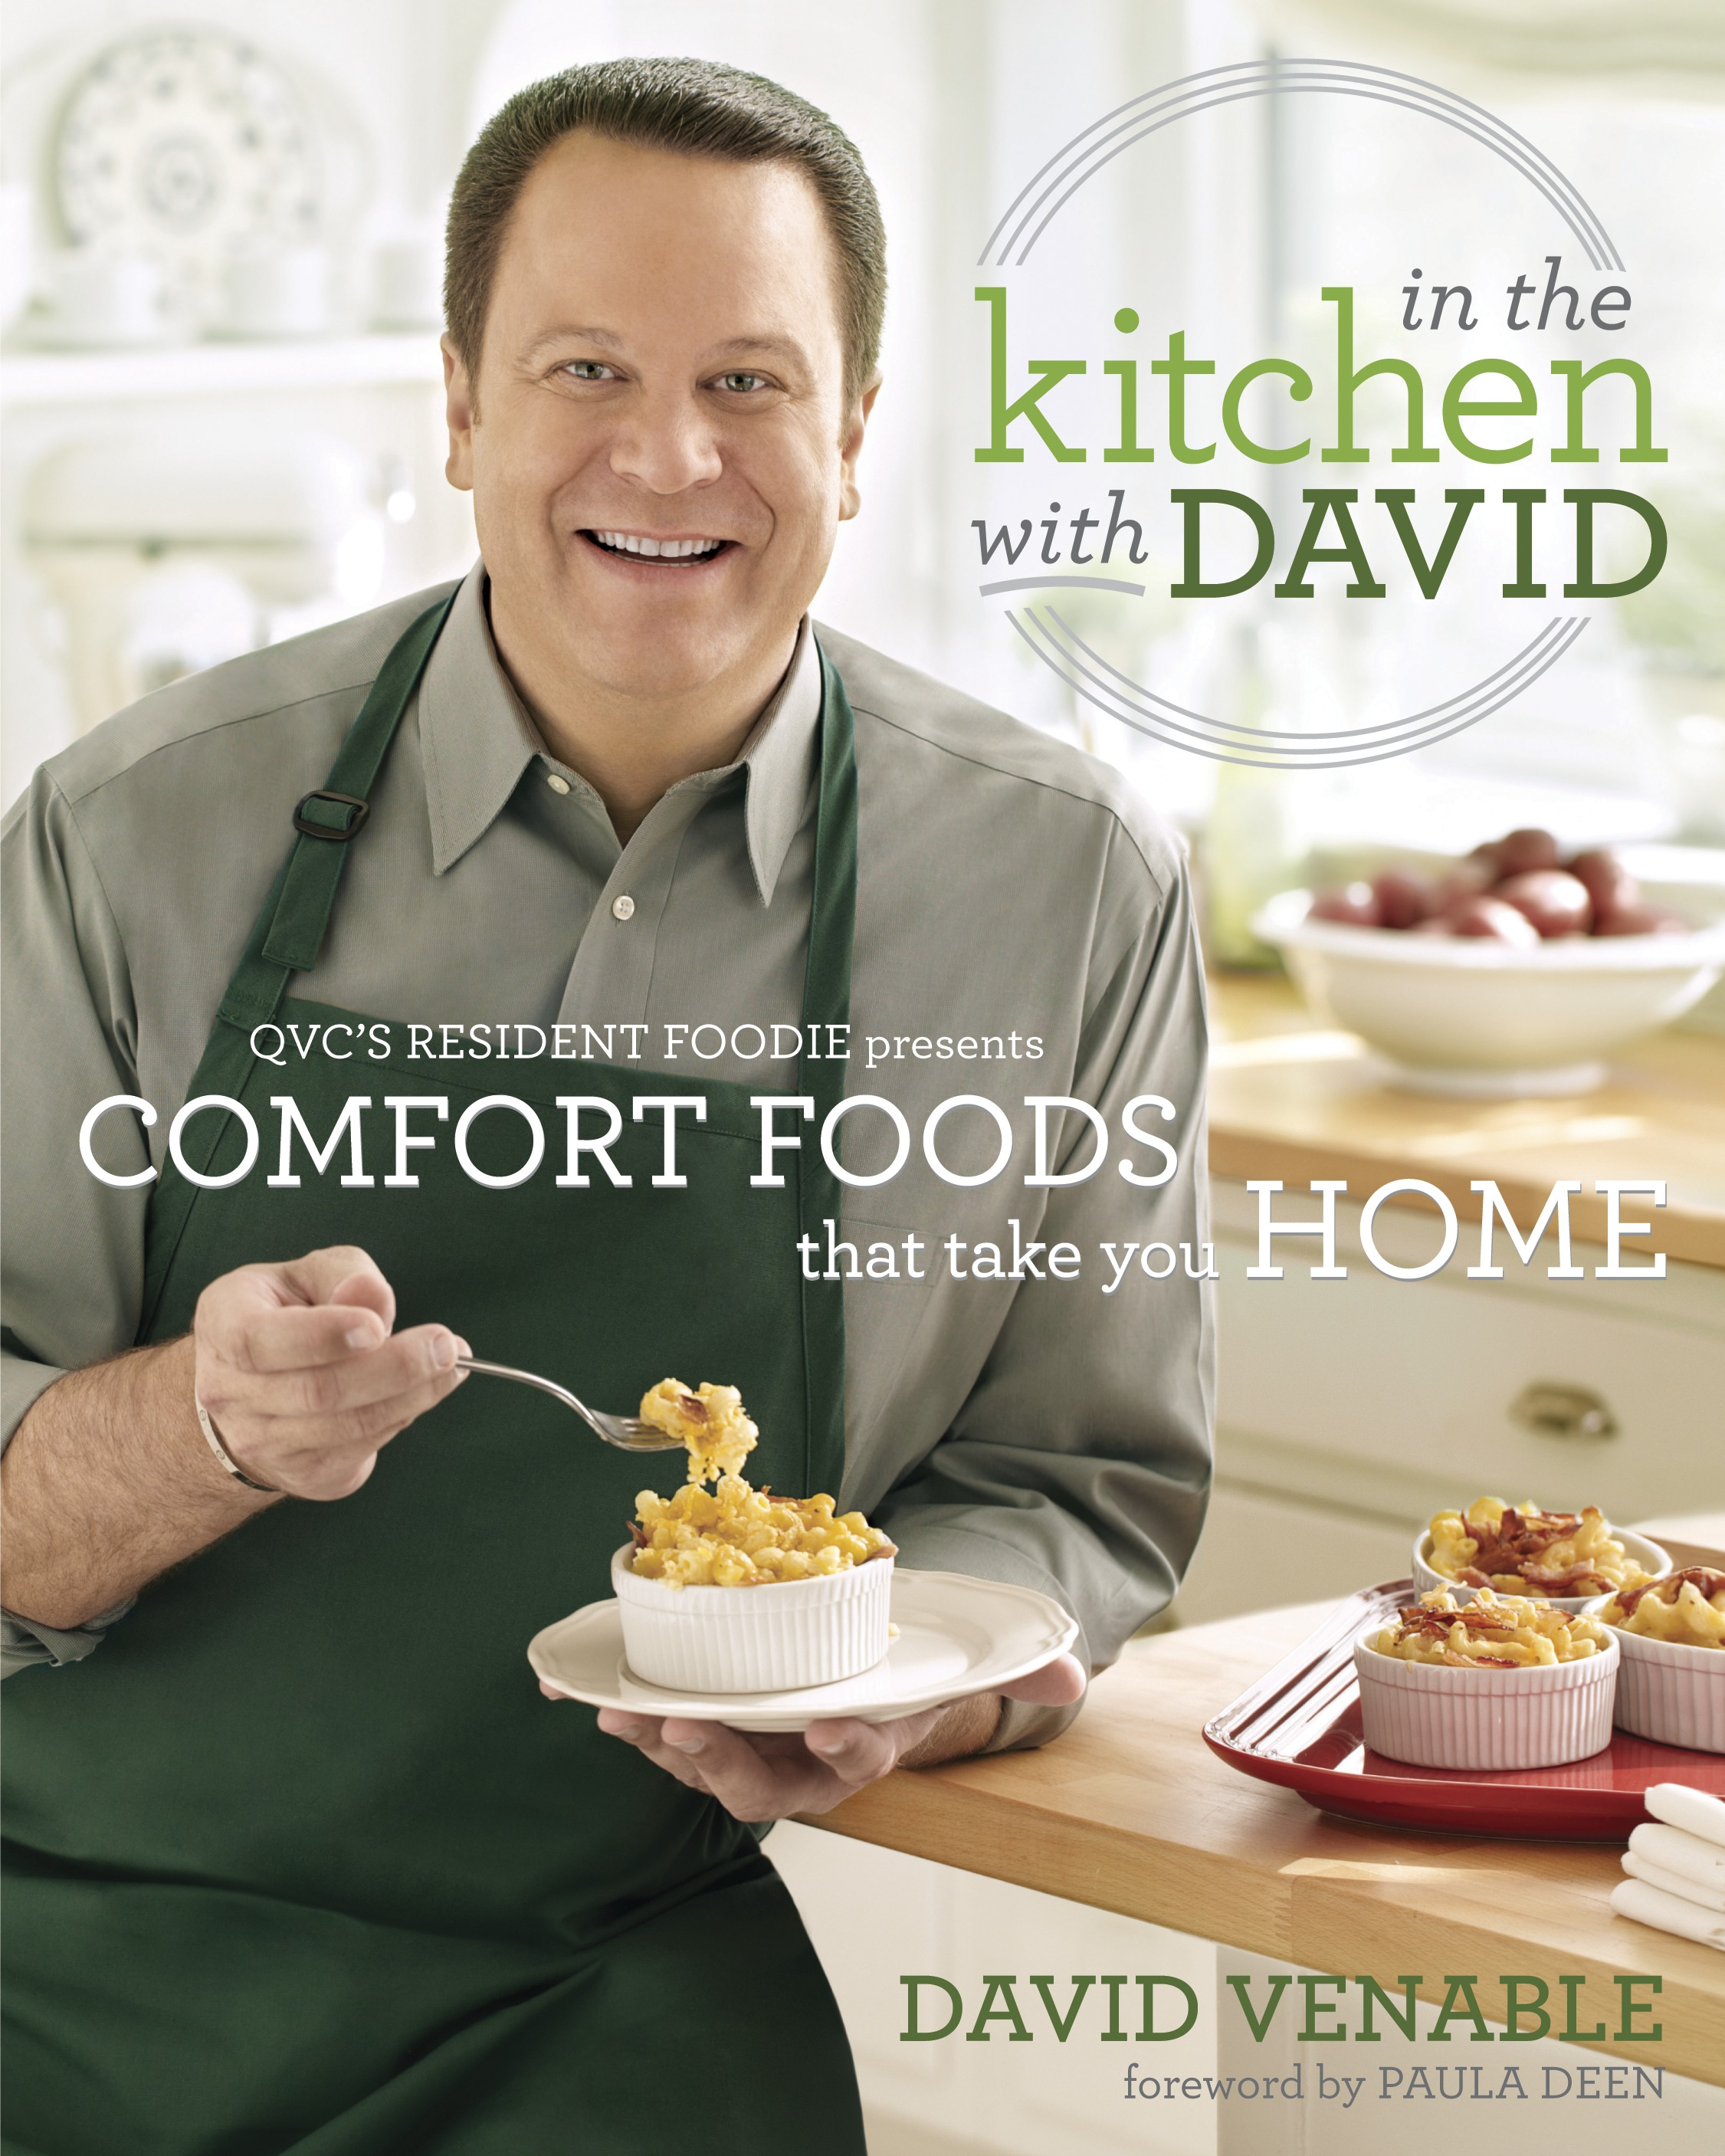 Delightful In The Kitchen With David : QVCu0027s Resident Foodie Presents Comfort Foods  That Take You Home Amazing Design